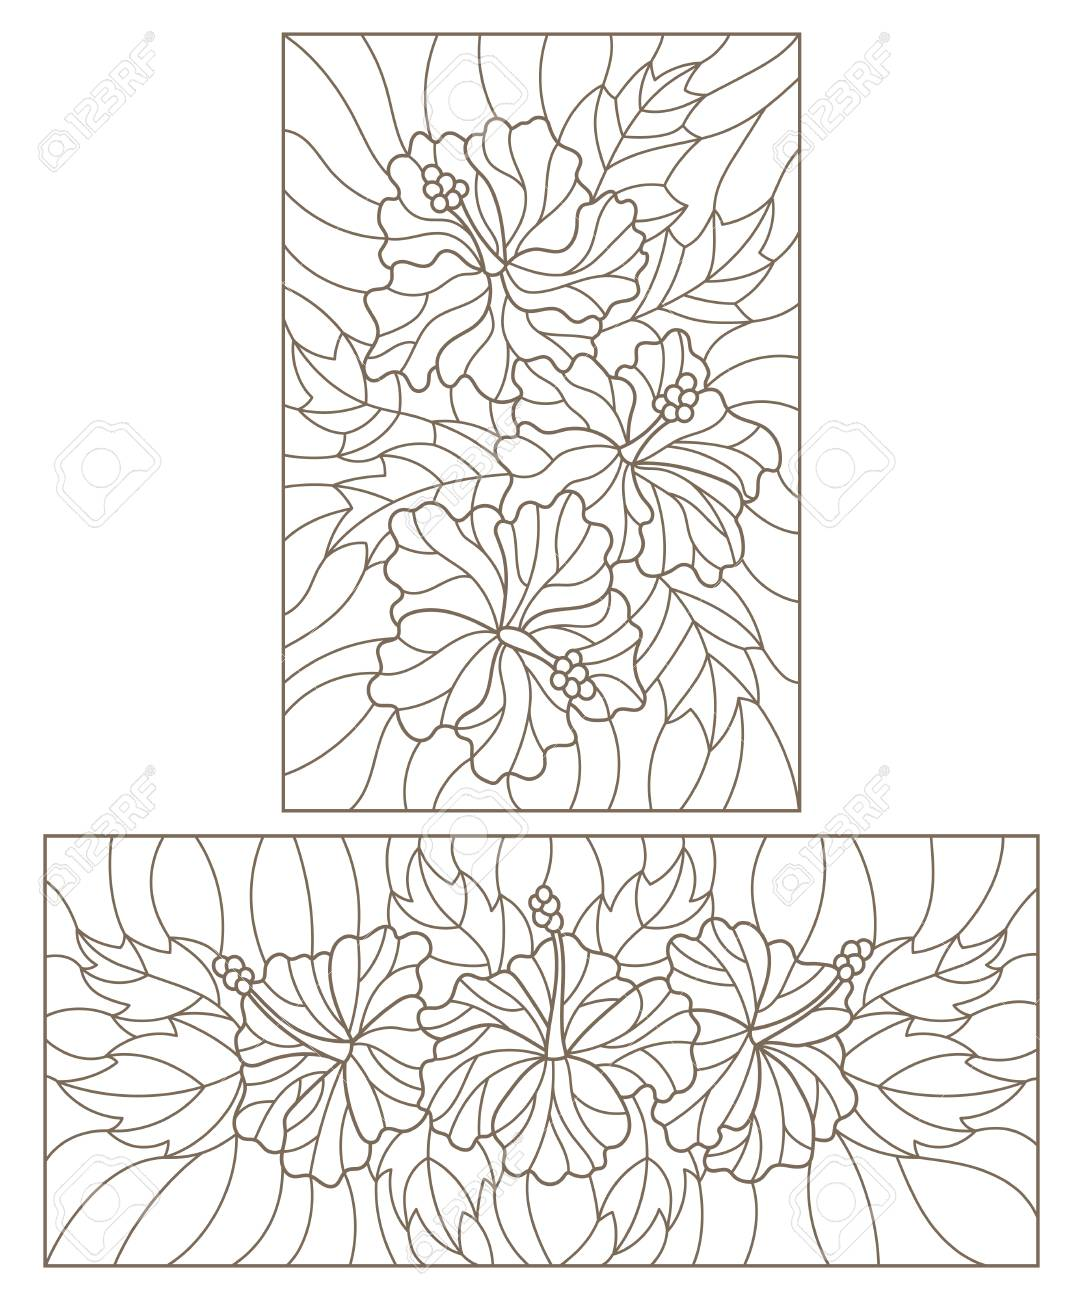 Set Contour Illustrations In The Stained Glass Style With Floral